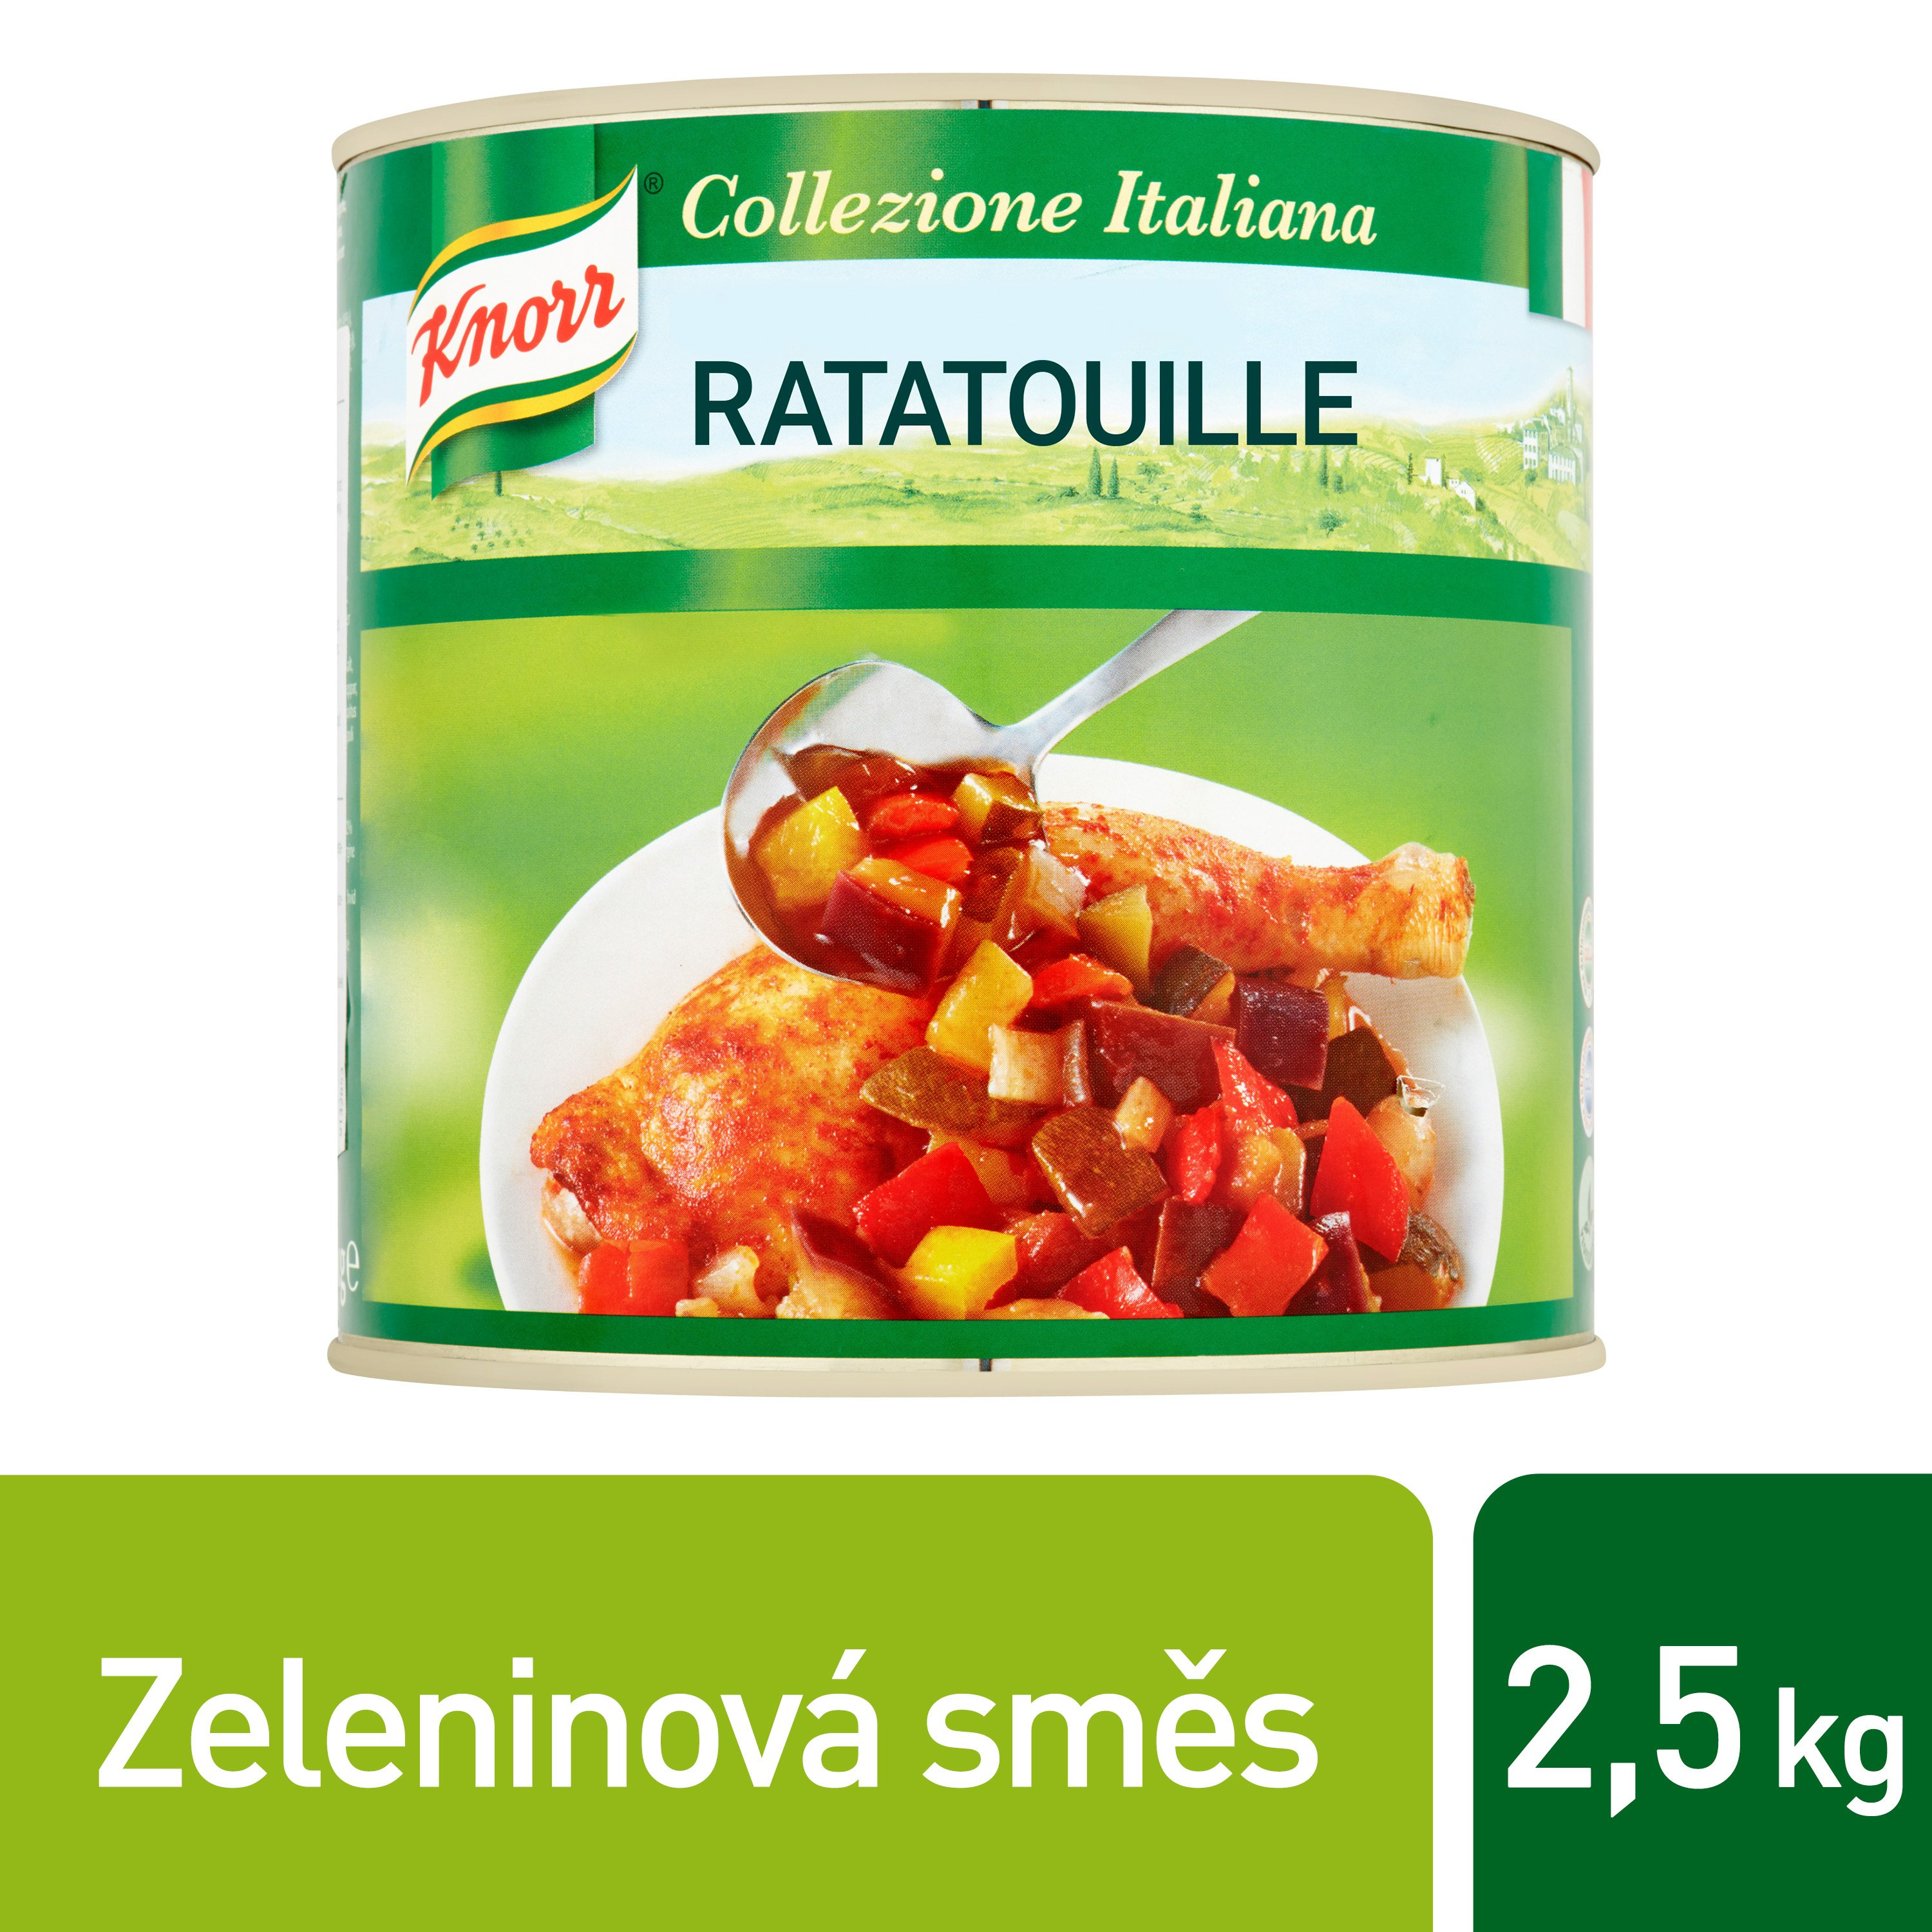 Ratatouille Knorr